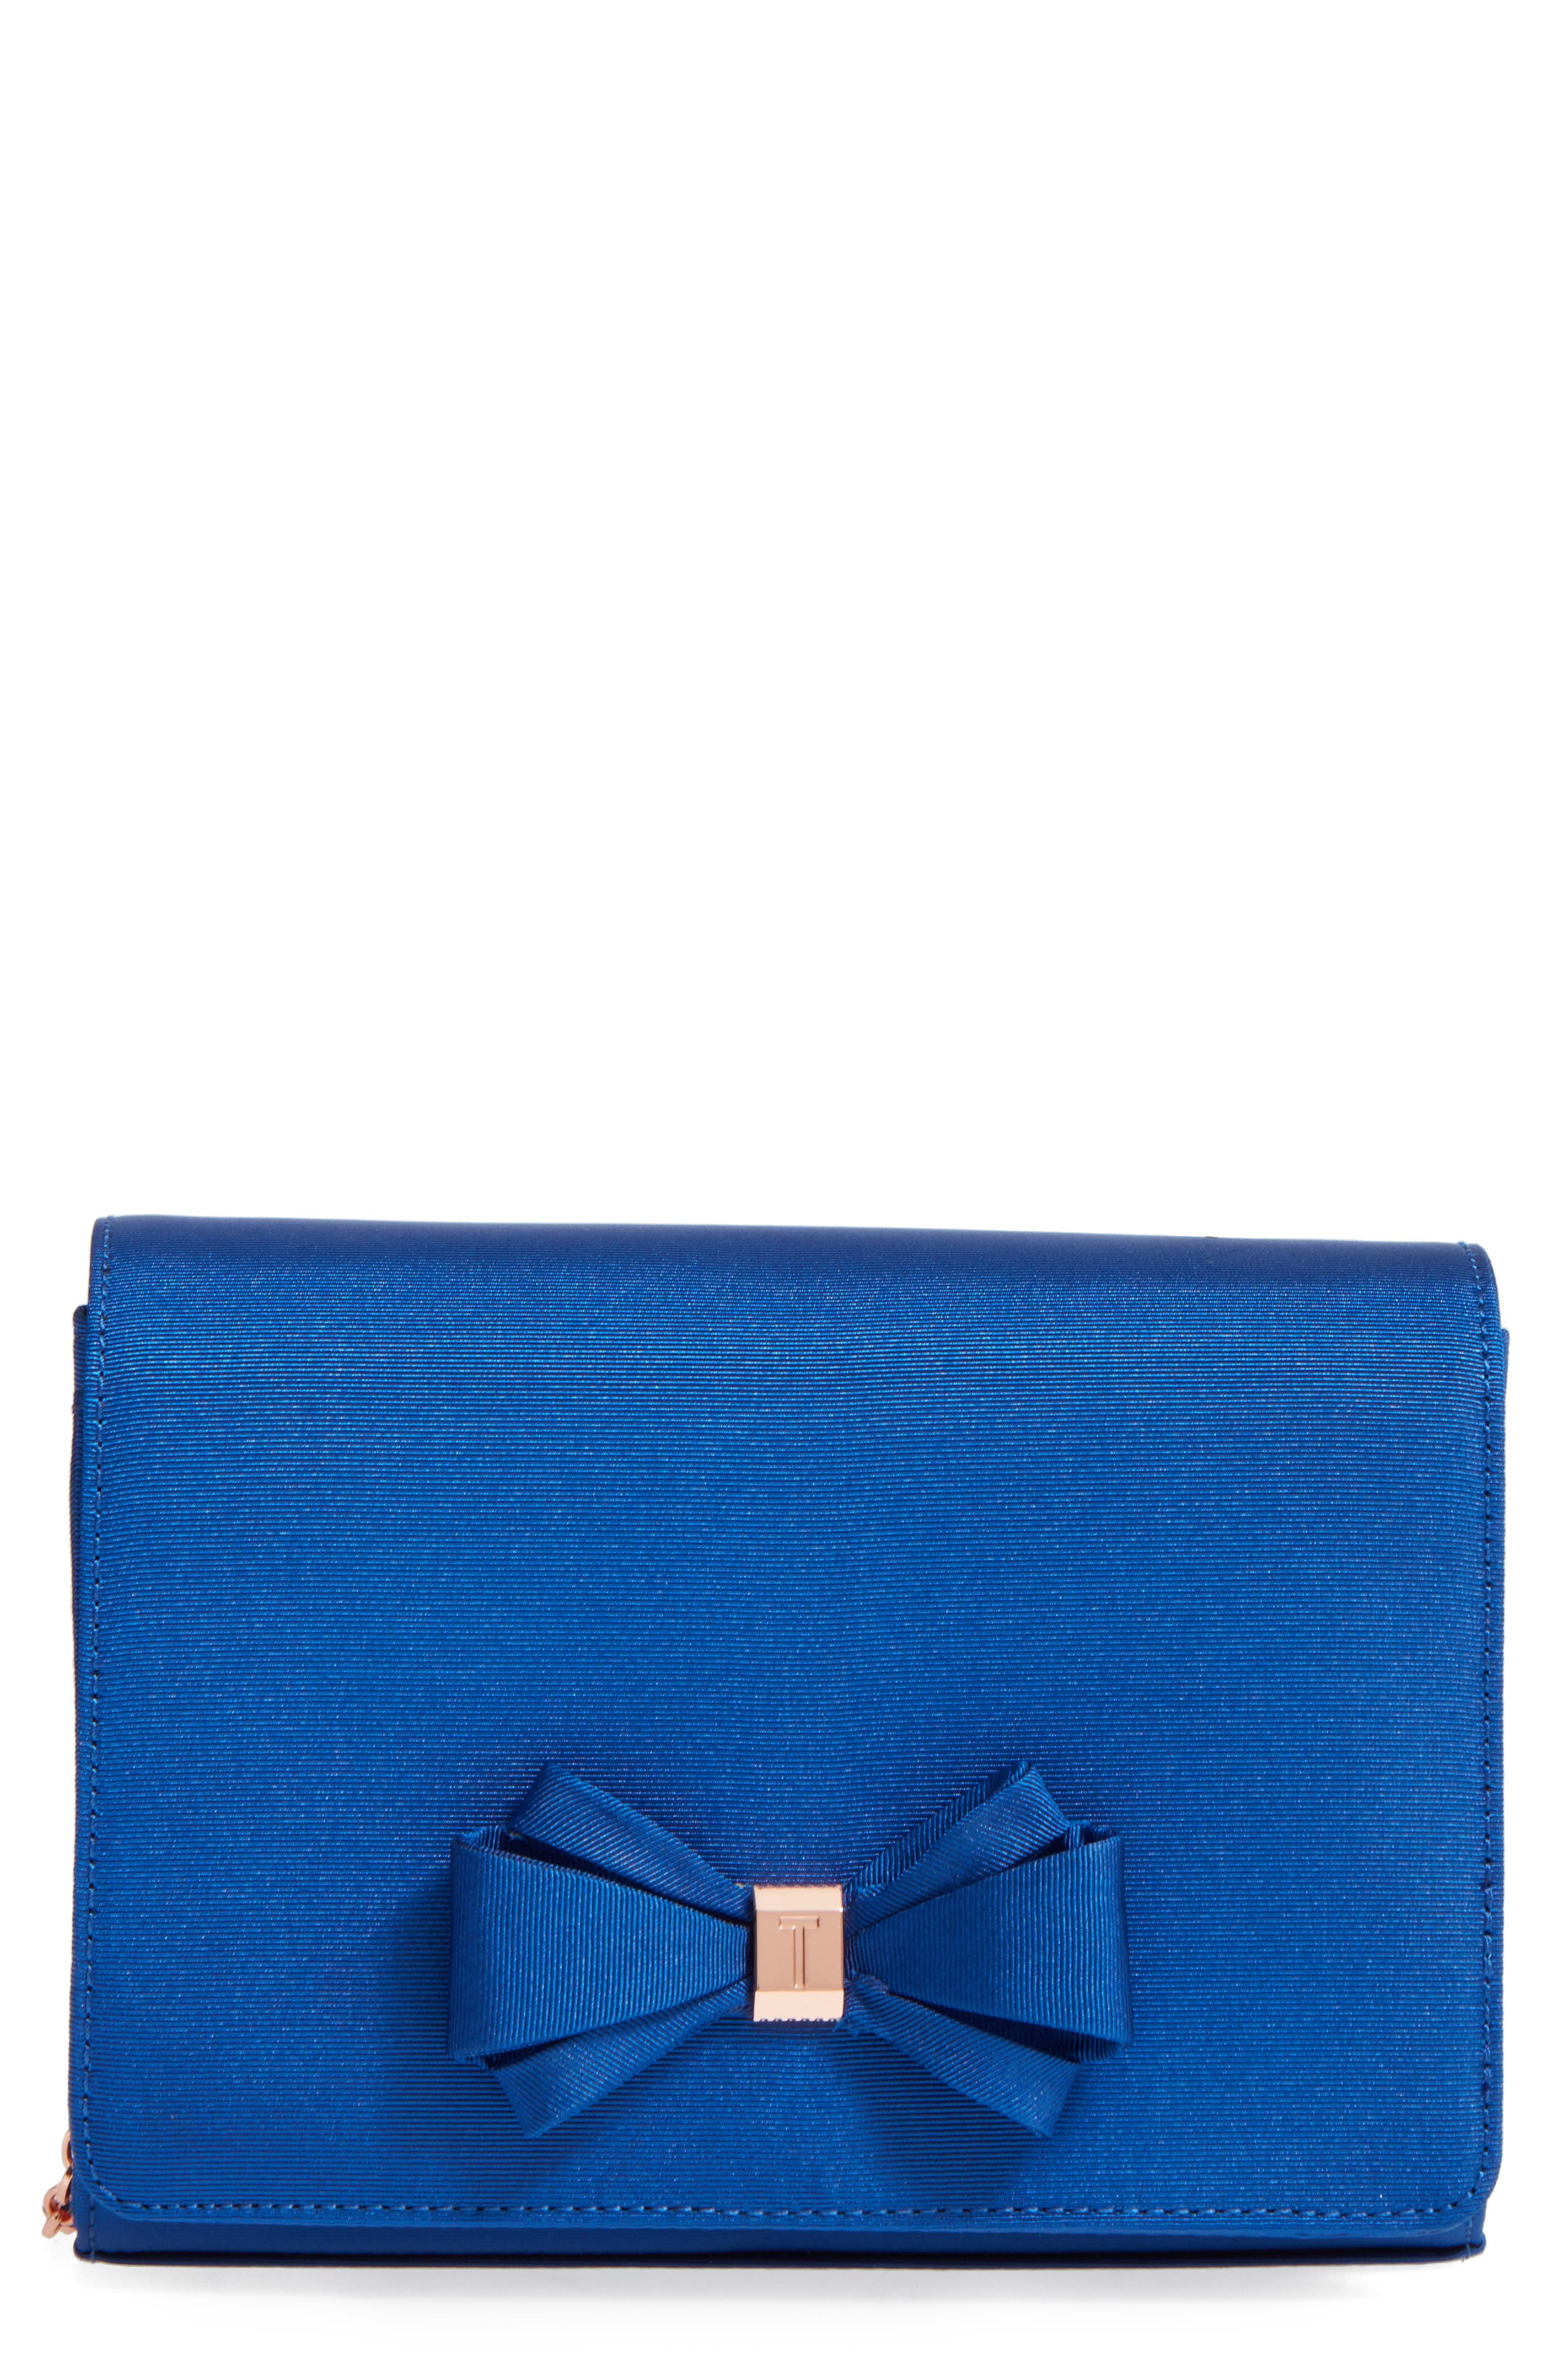 Alternate Image 1 Selected - Ted Baker London Bow Clutch